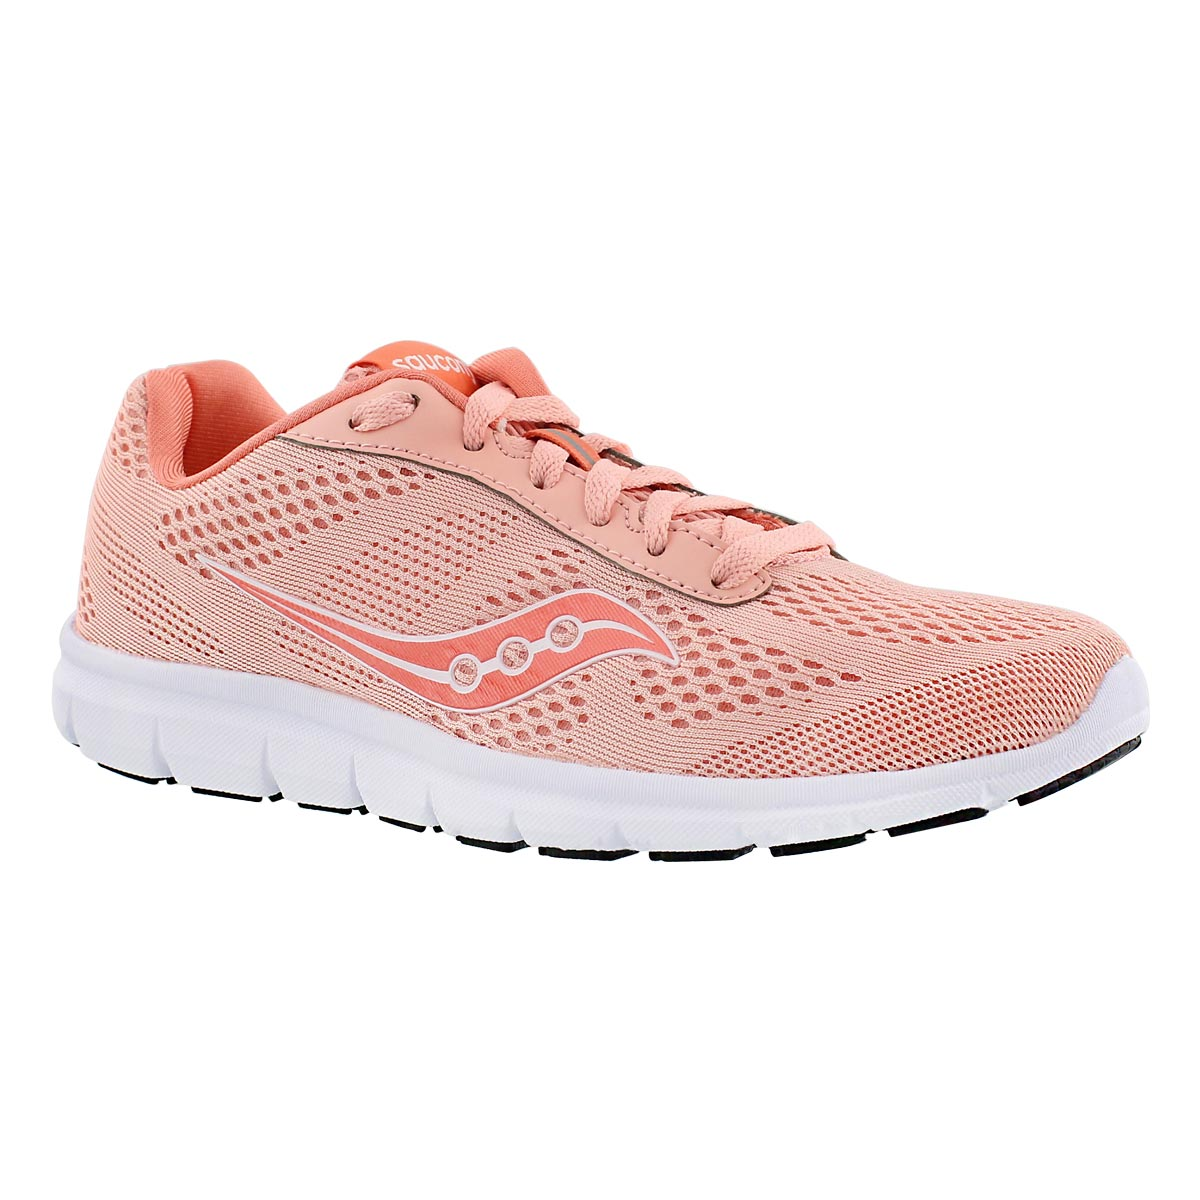 Lds Ideal coral/wht lace up running shoe